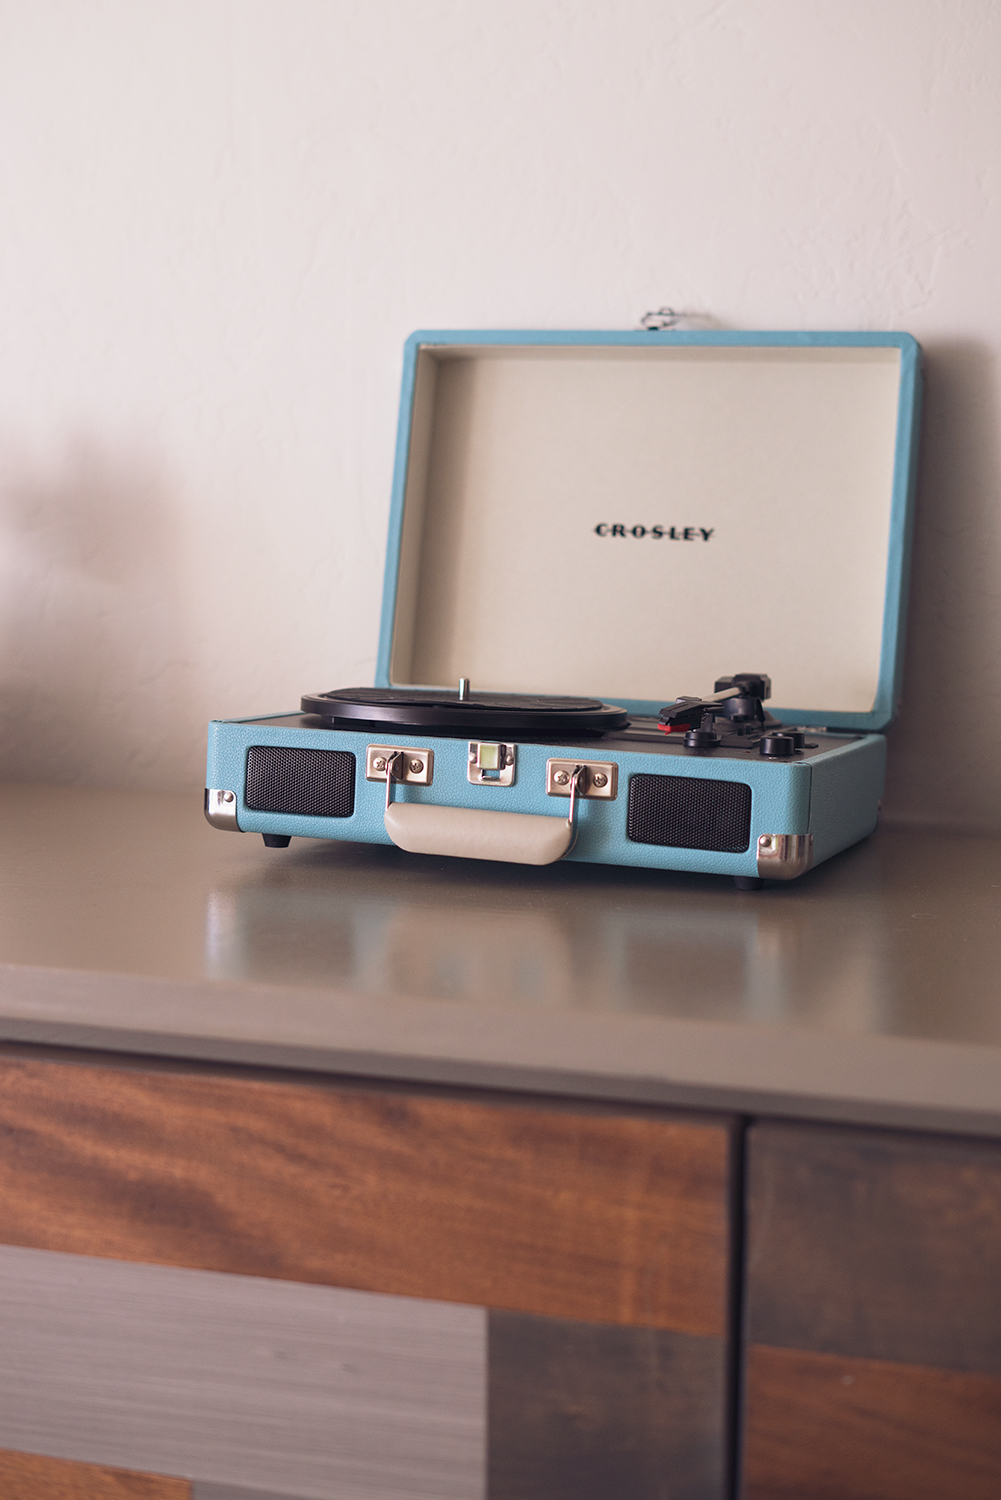 05goodland-santabarbara-hotel-travel-recordplayer